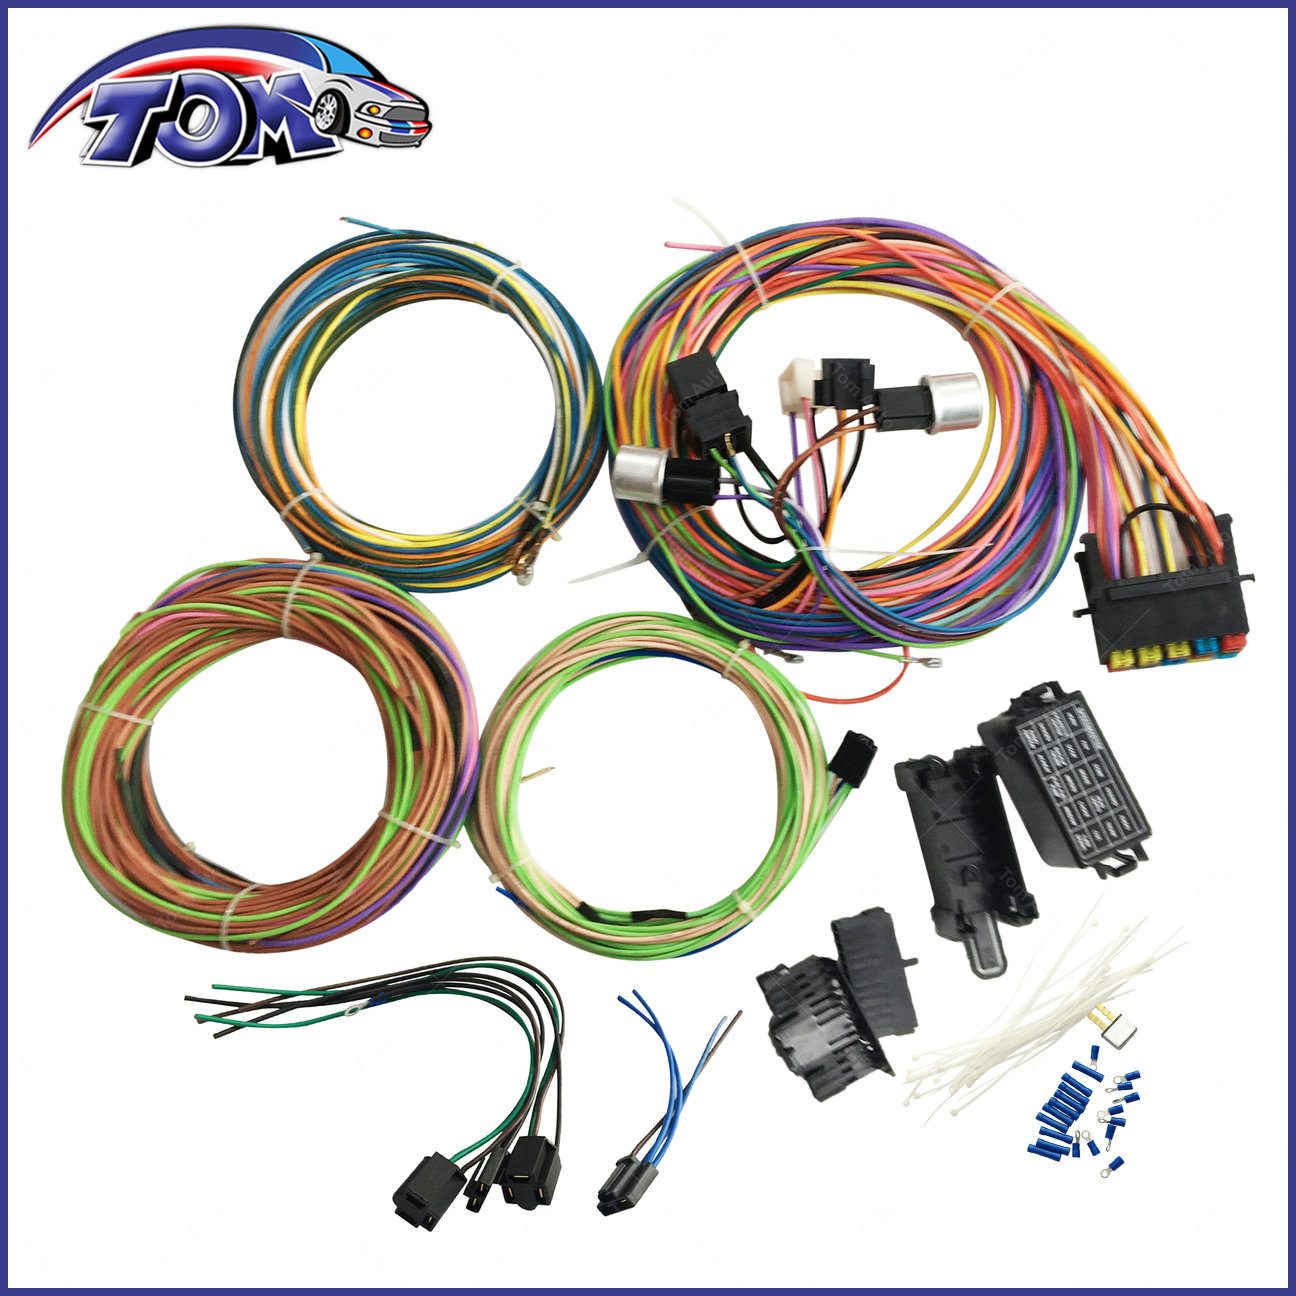 Excellent 20 Circuit Wiring Harness Mini Fuse Chevy Ford Hotrods Universal X Wiring Cloud Philuggs Outletorg